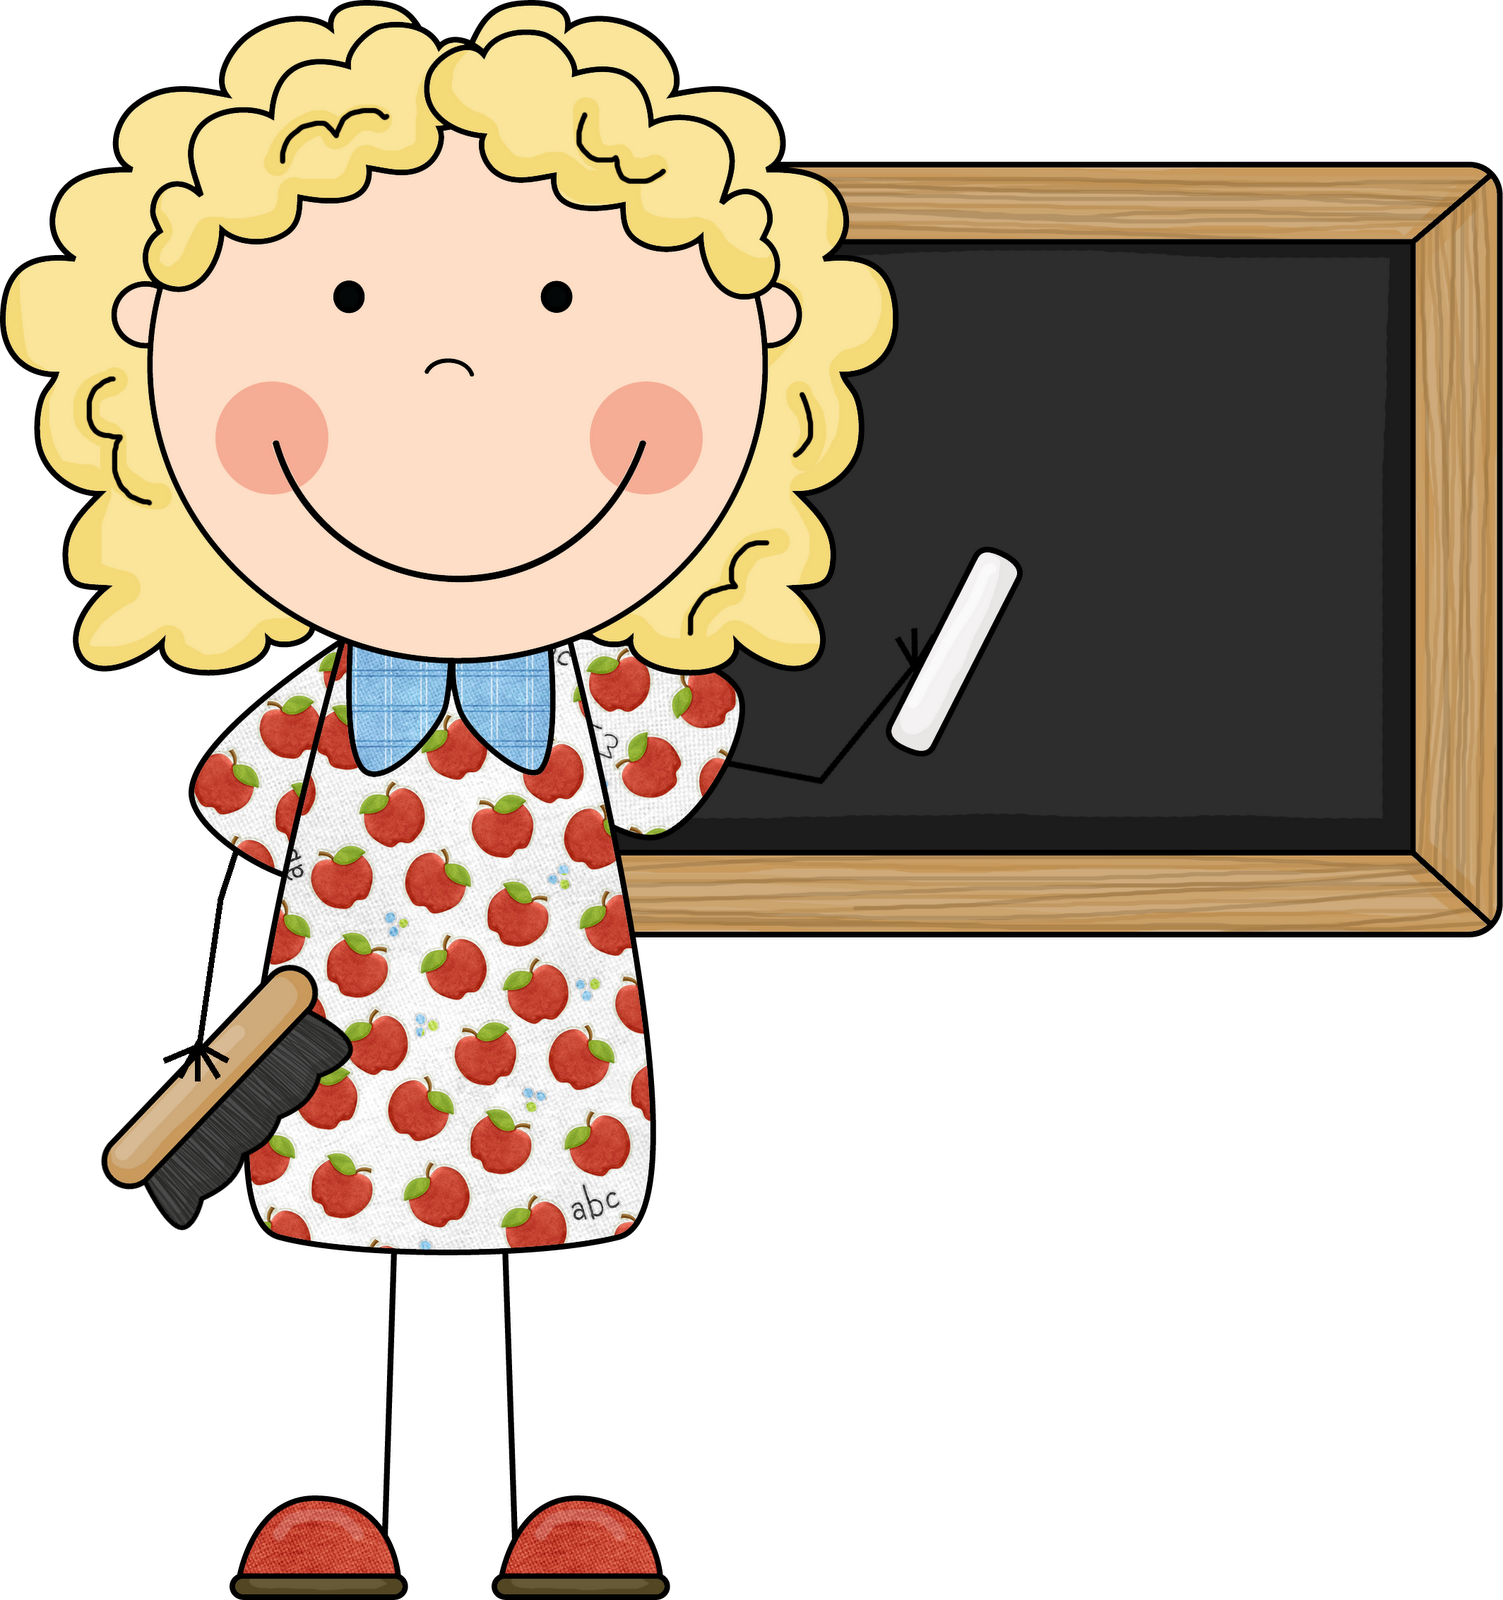 Kinder Cliparts Kindergarten Teacher Clip Art Classroom Decoration Teacher